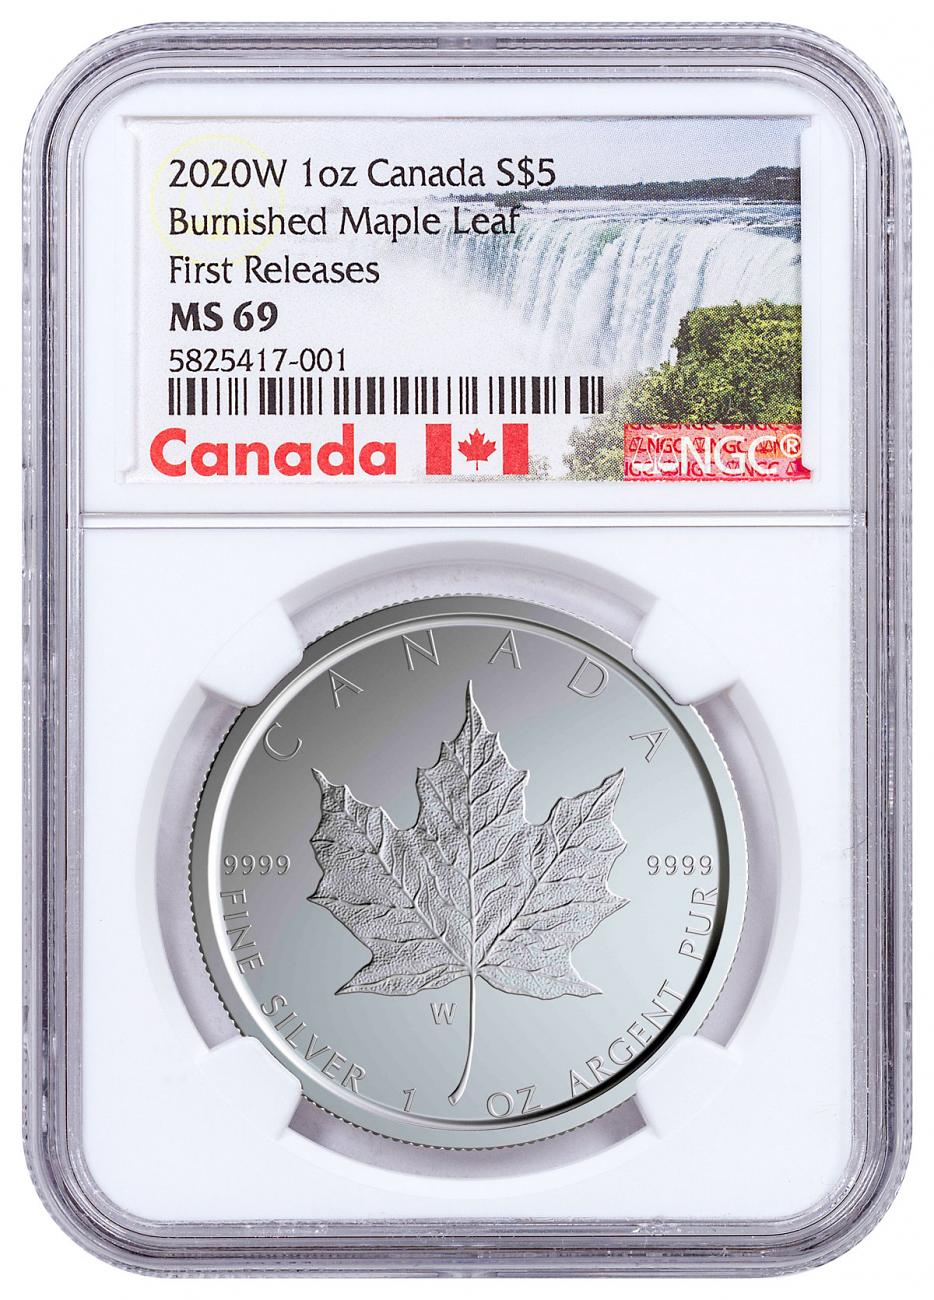 2020-W Canada 1 oz Silver Maple Leaf Burnished $5 Coin NGC MS69 FR With Mint COA Exclusive Canada Label